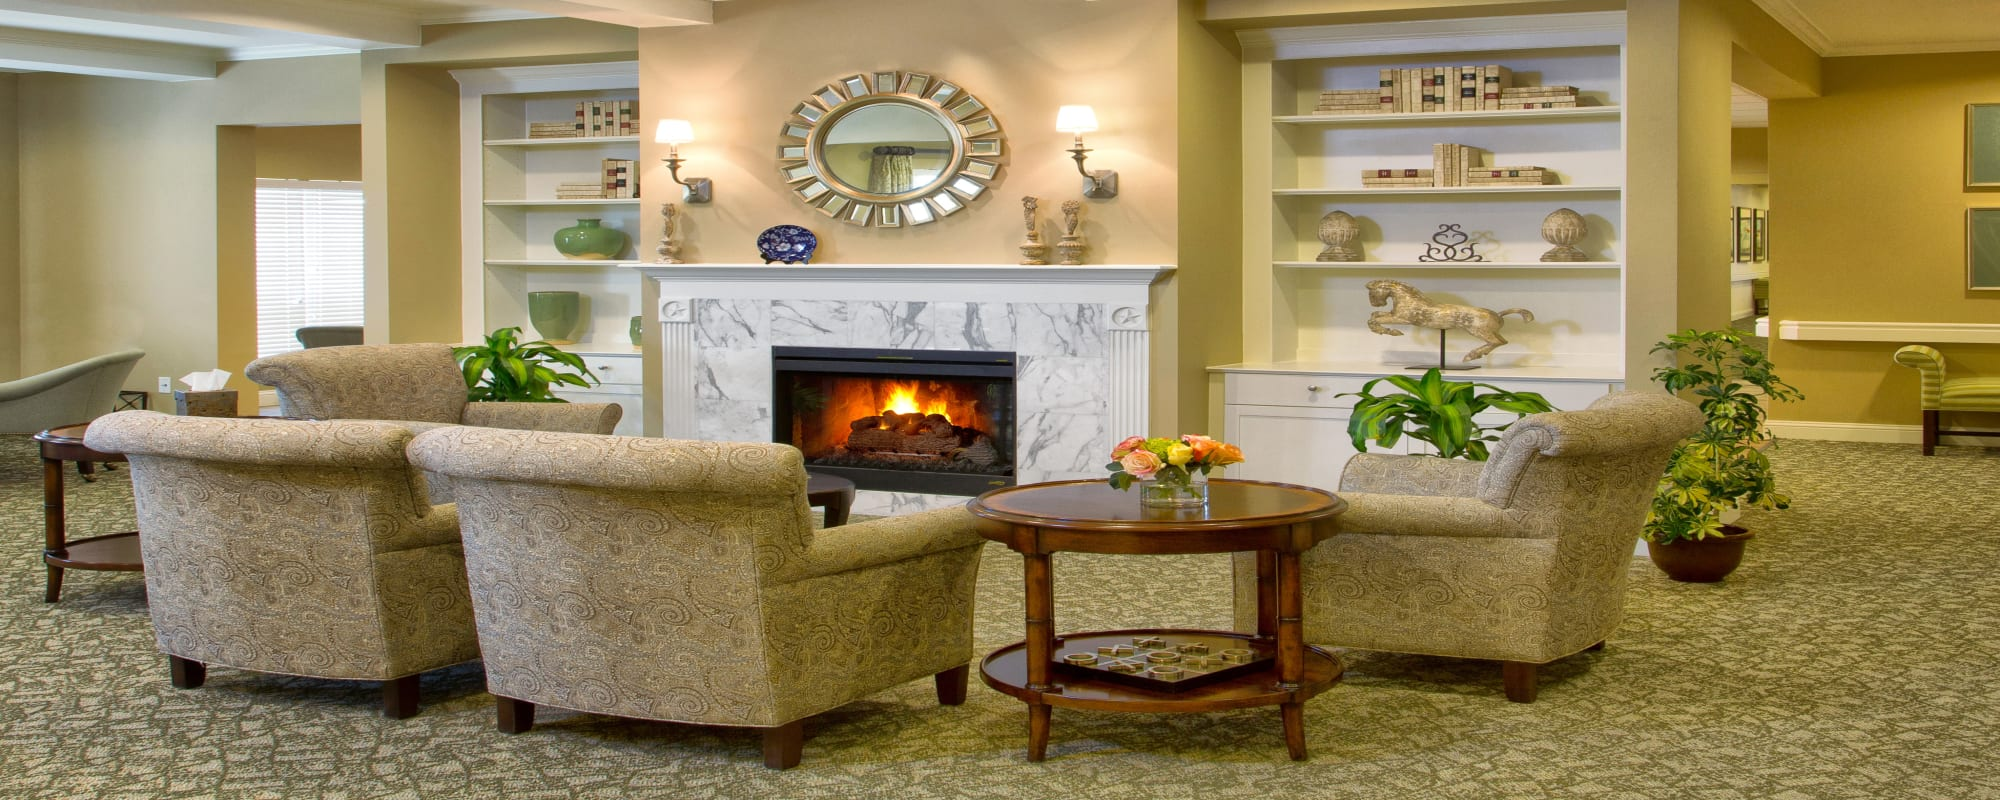 Carriage Inn Bryan senior living - Live Life Well TV